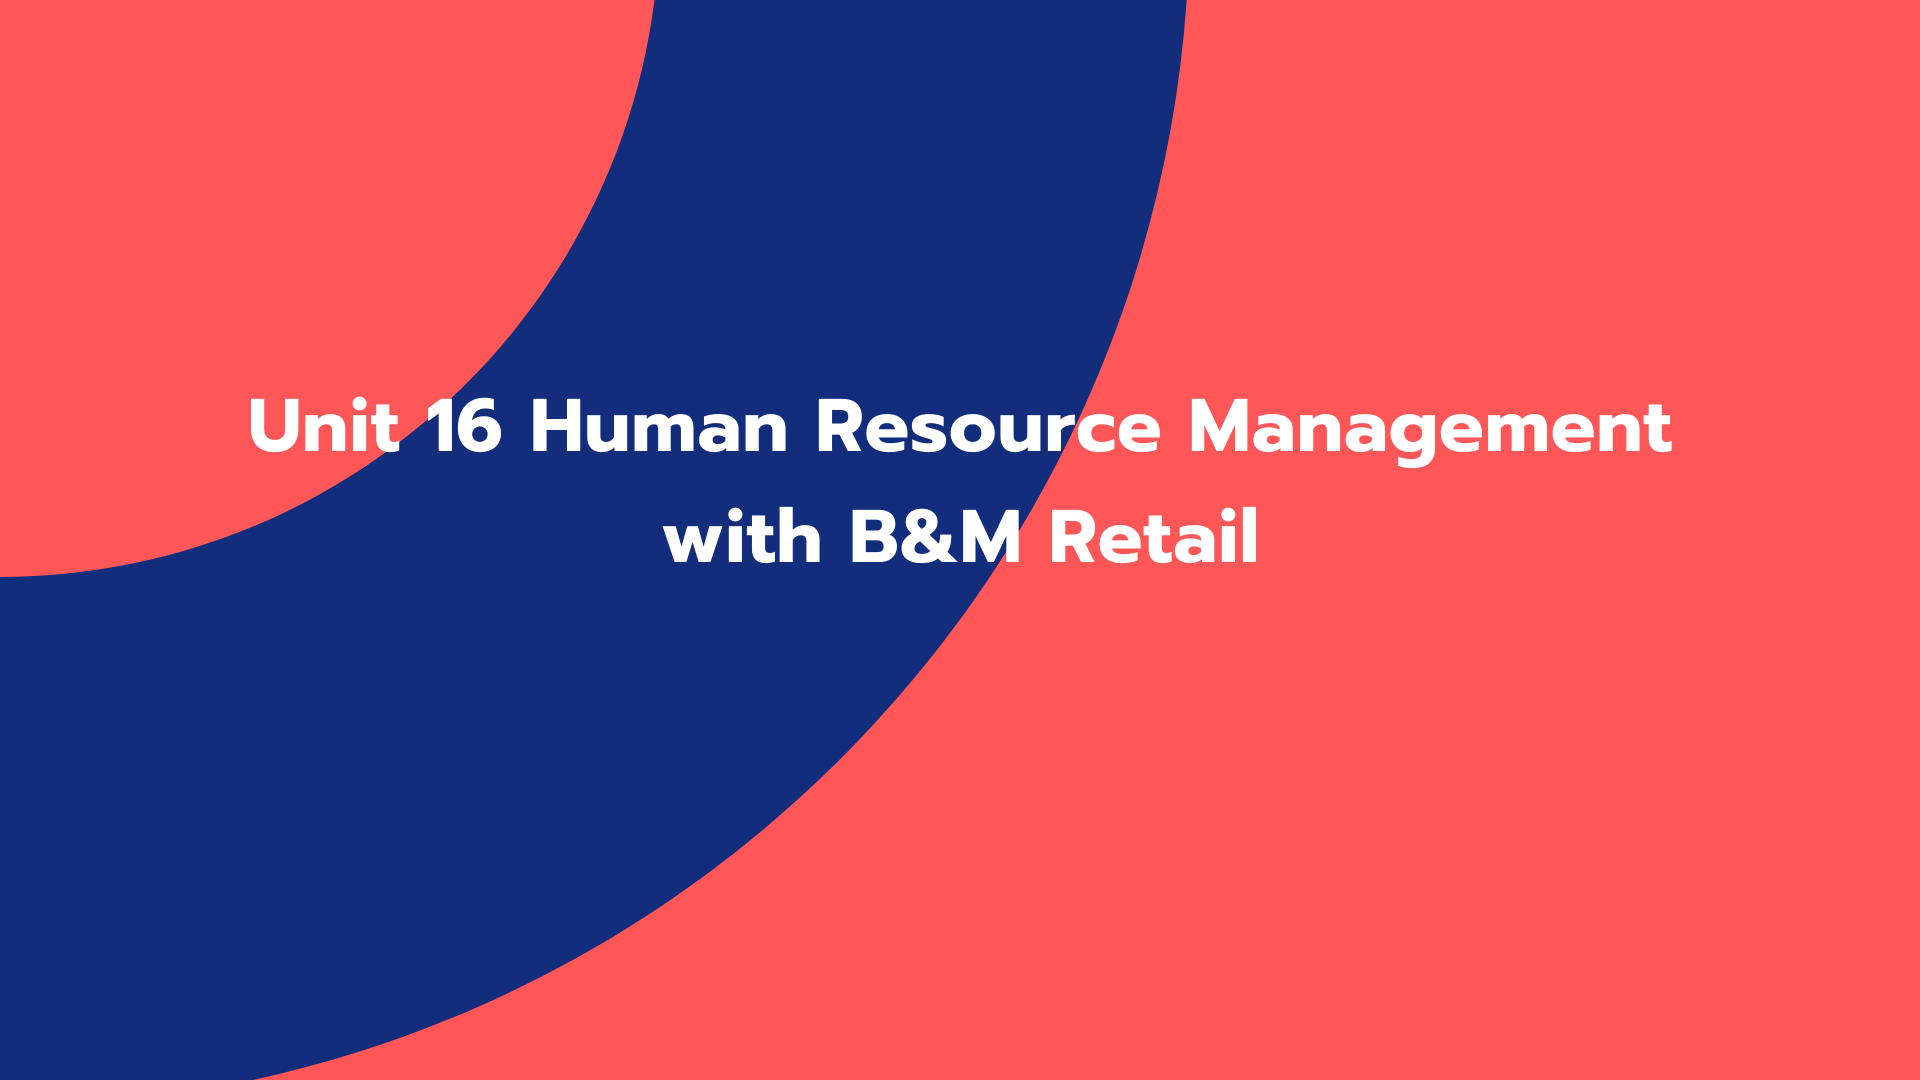 Unit 16 Human Resource Management with B&M Retail